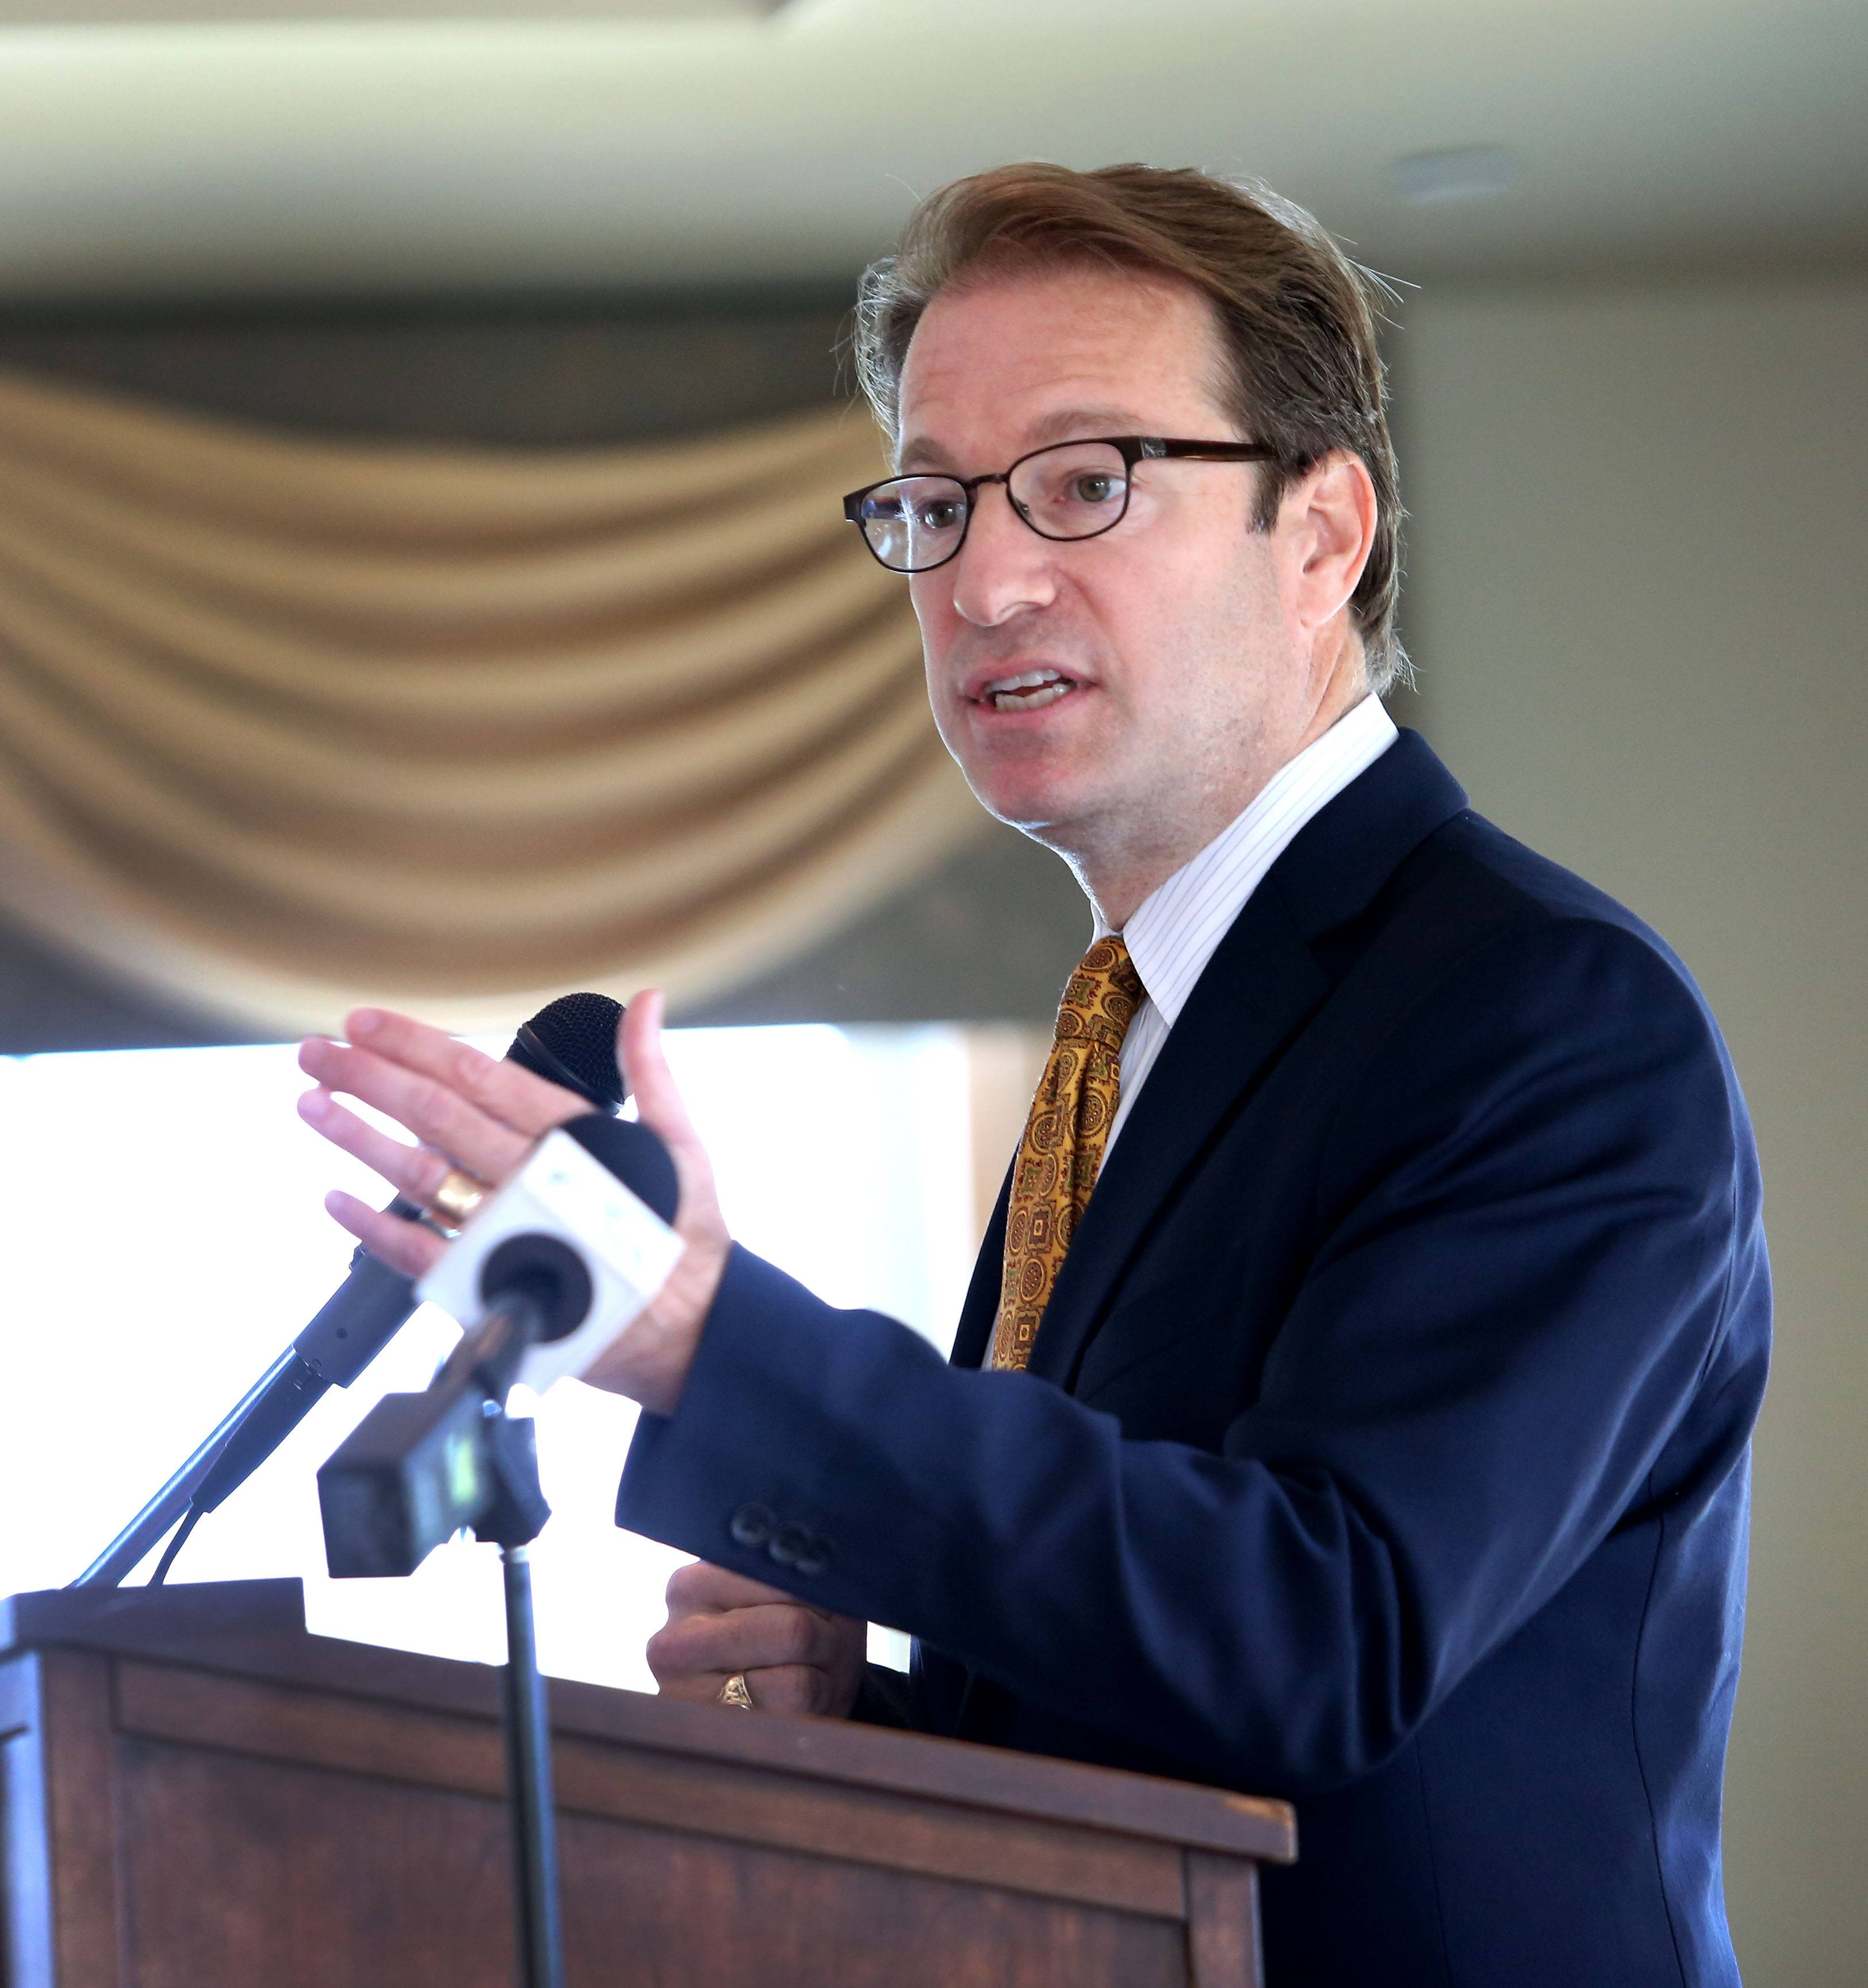 Roskam campaigns to become majority whip